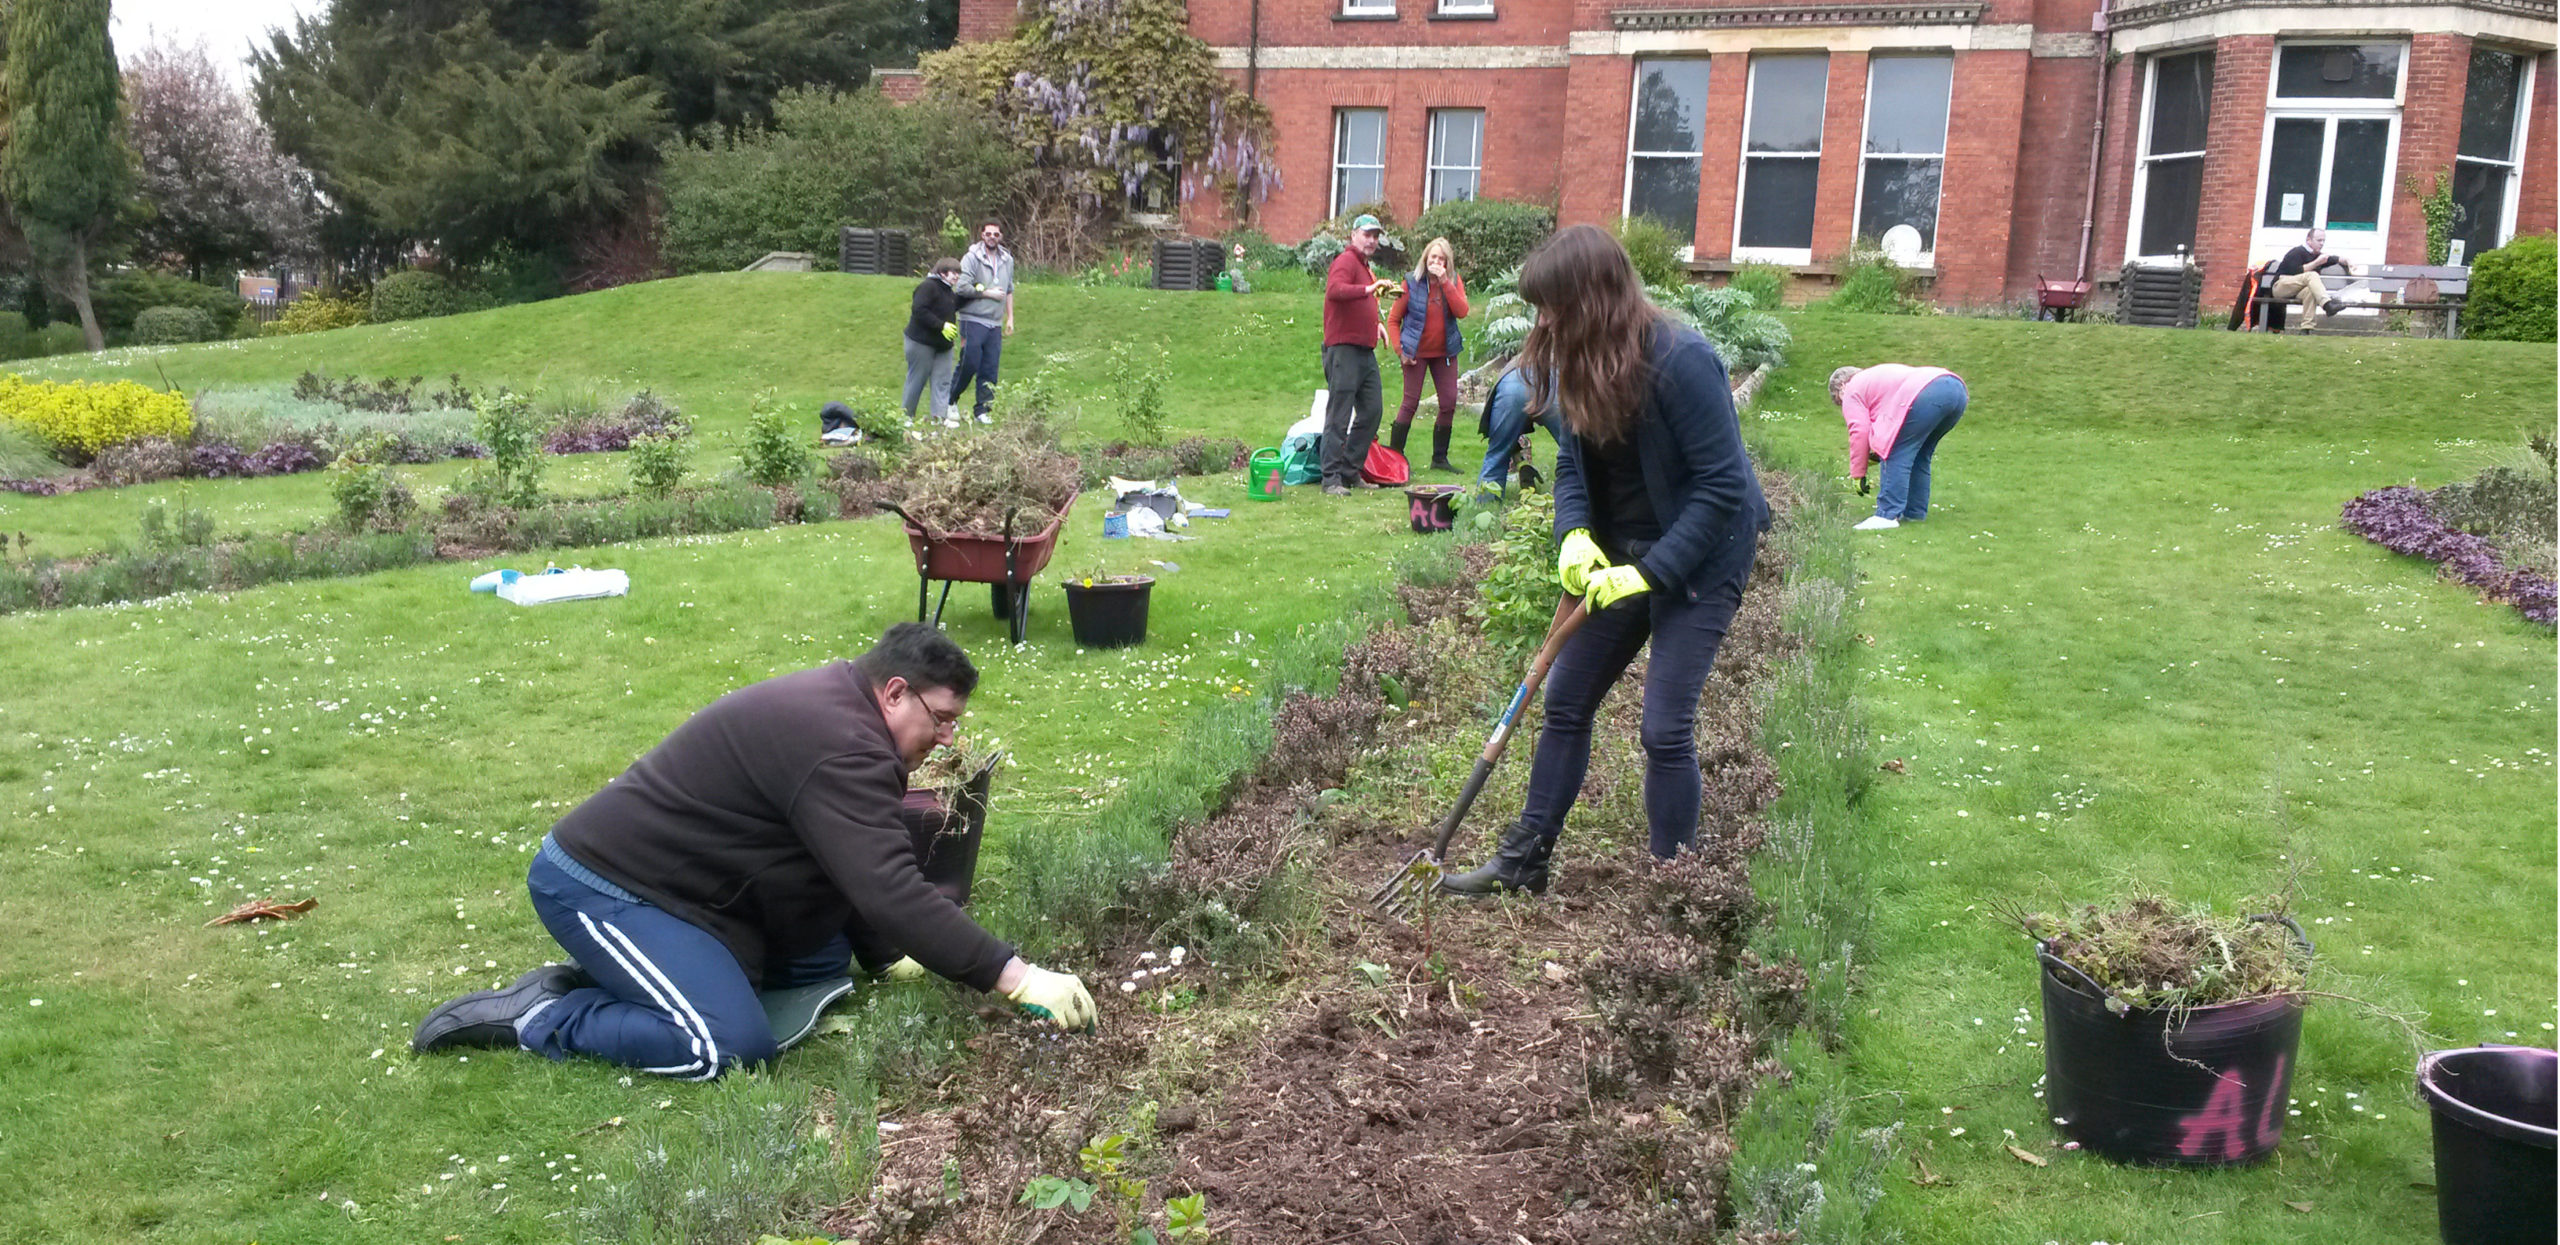 A group of ActivLives volunteers tend to a public garden in Sudbury